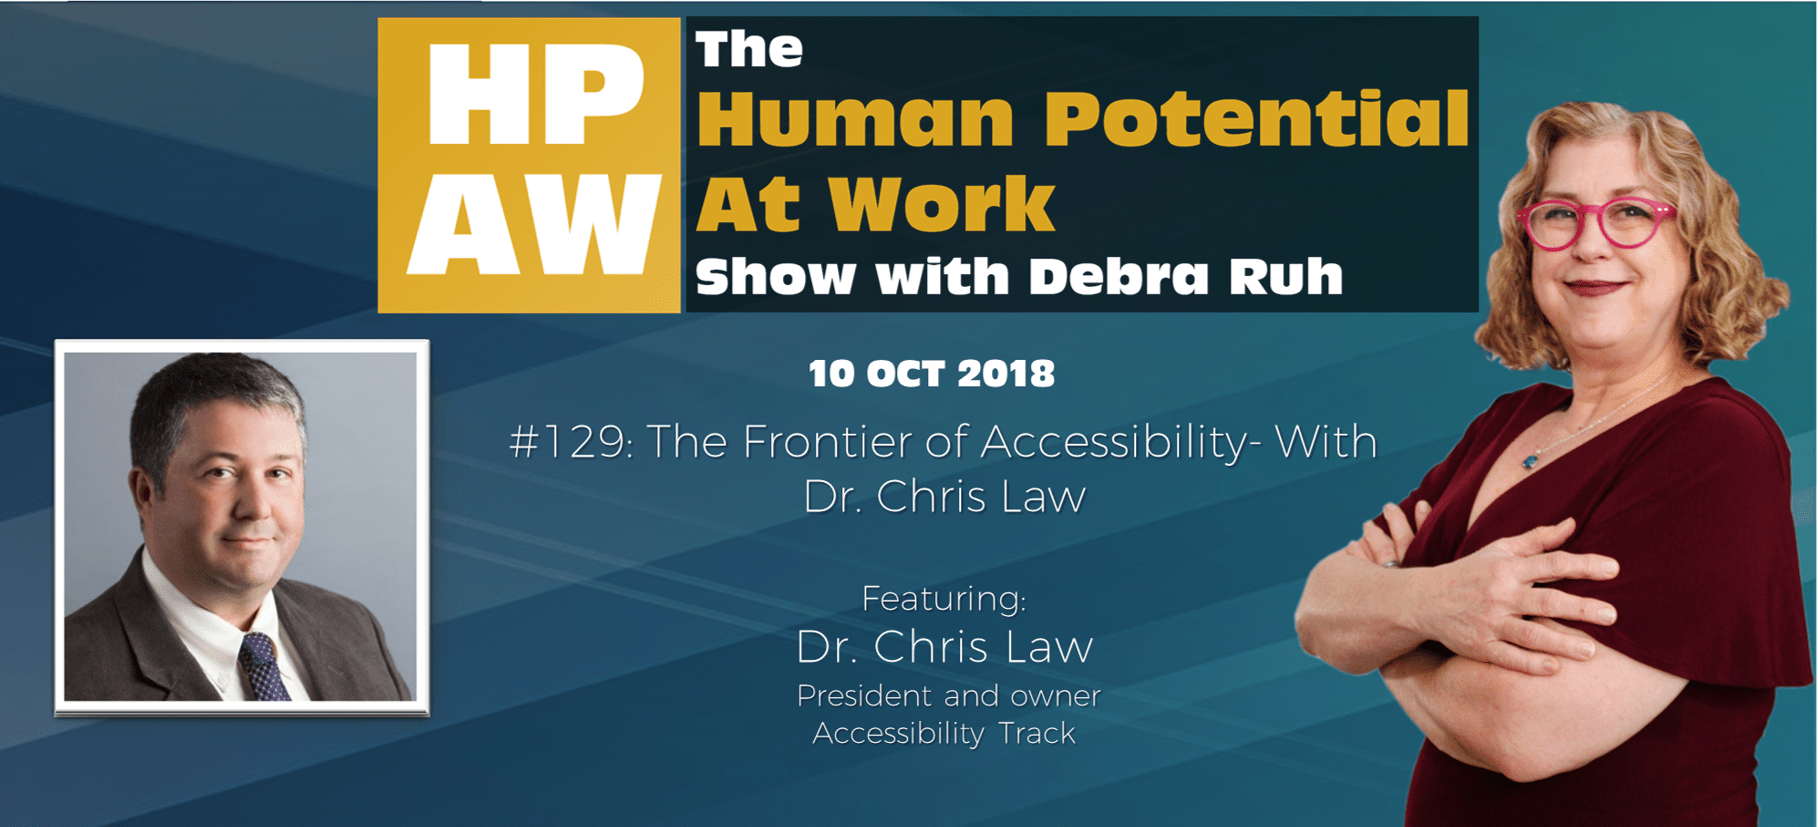 Episode Flyer for #129 The Frontier of Accessibility- With Dr. Chris Law